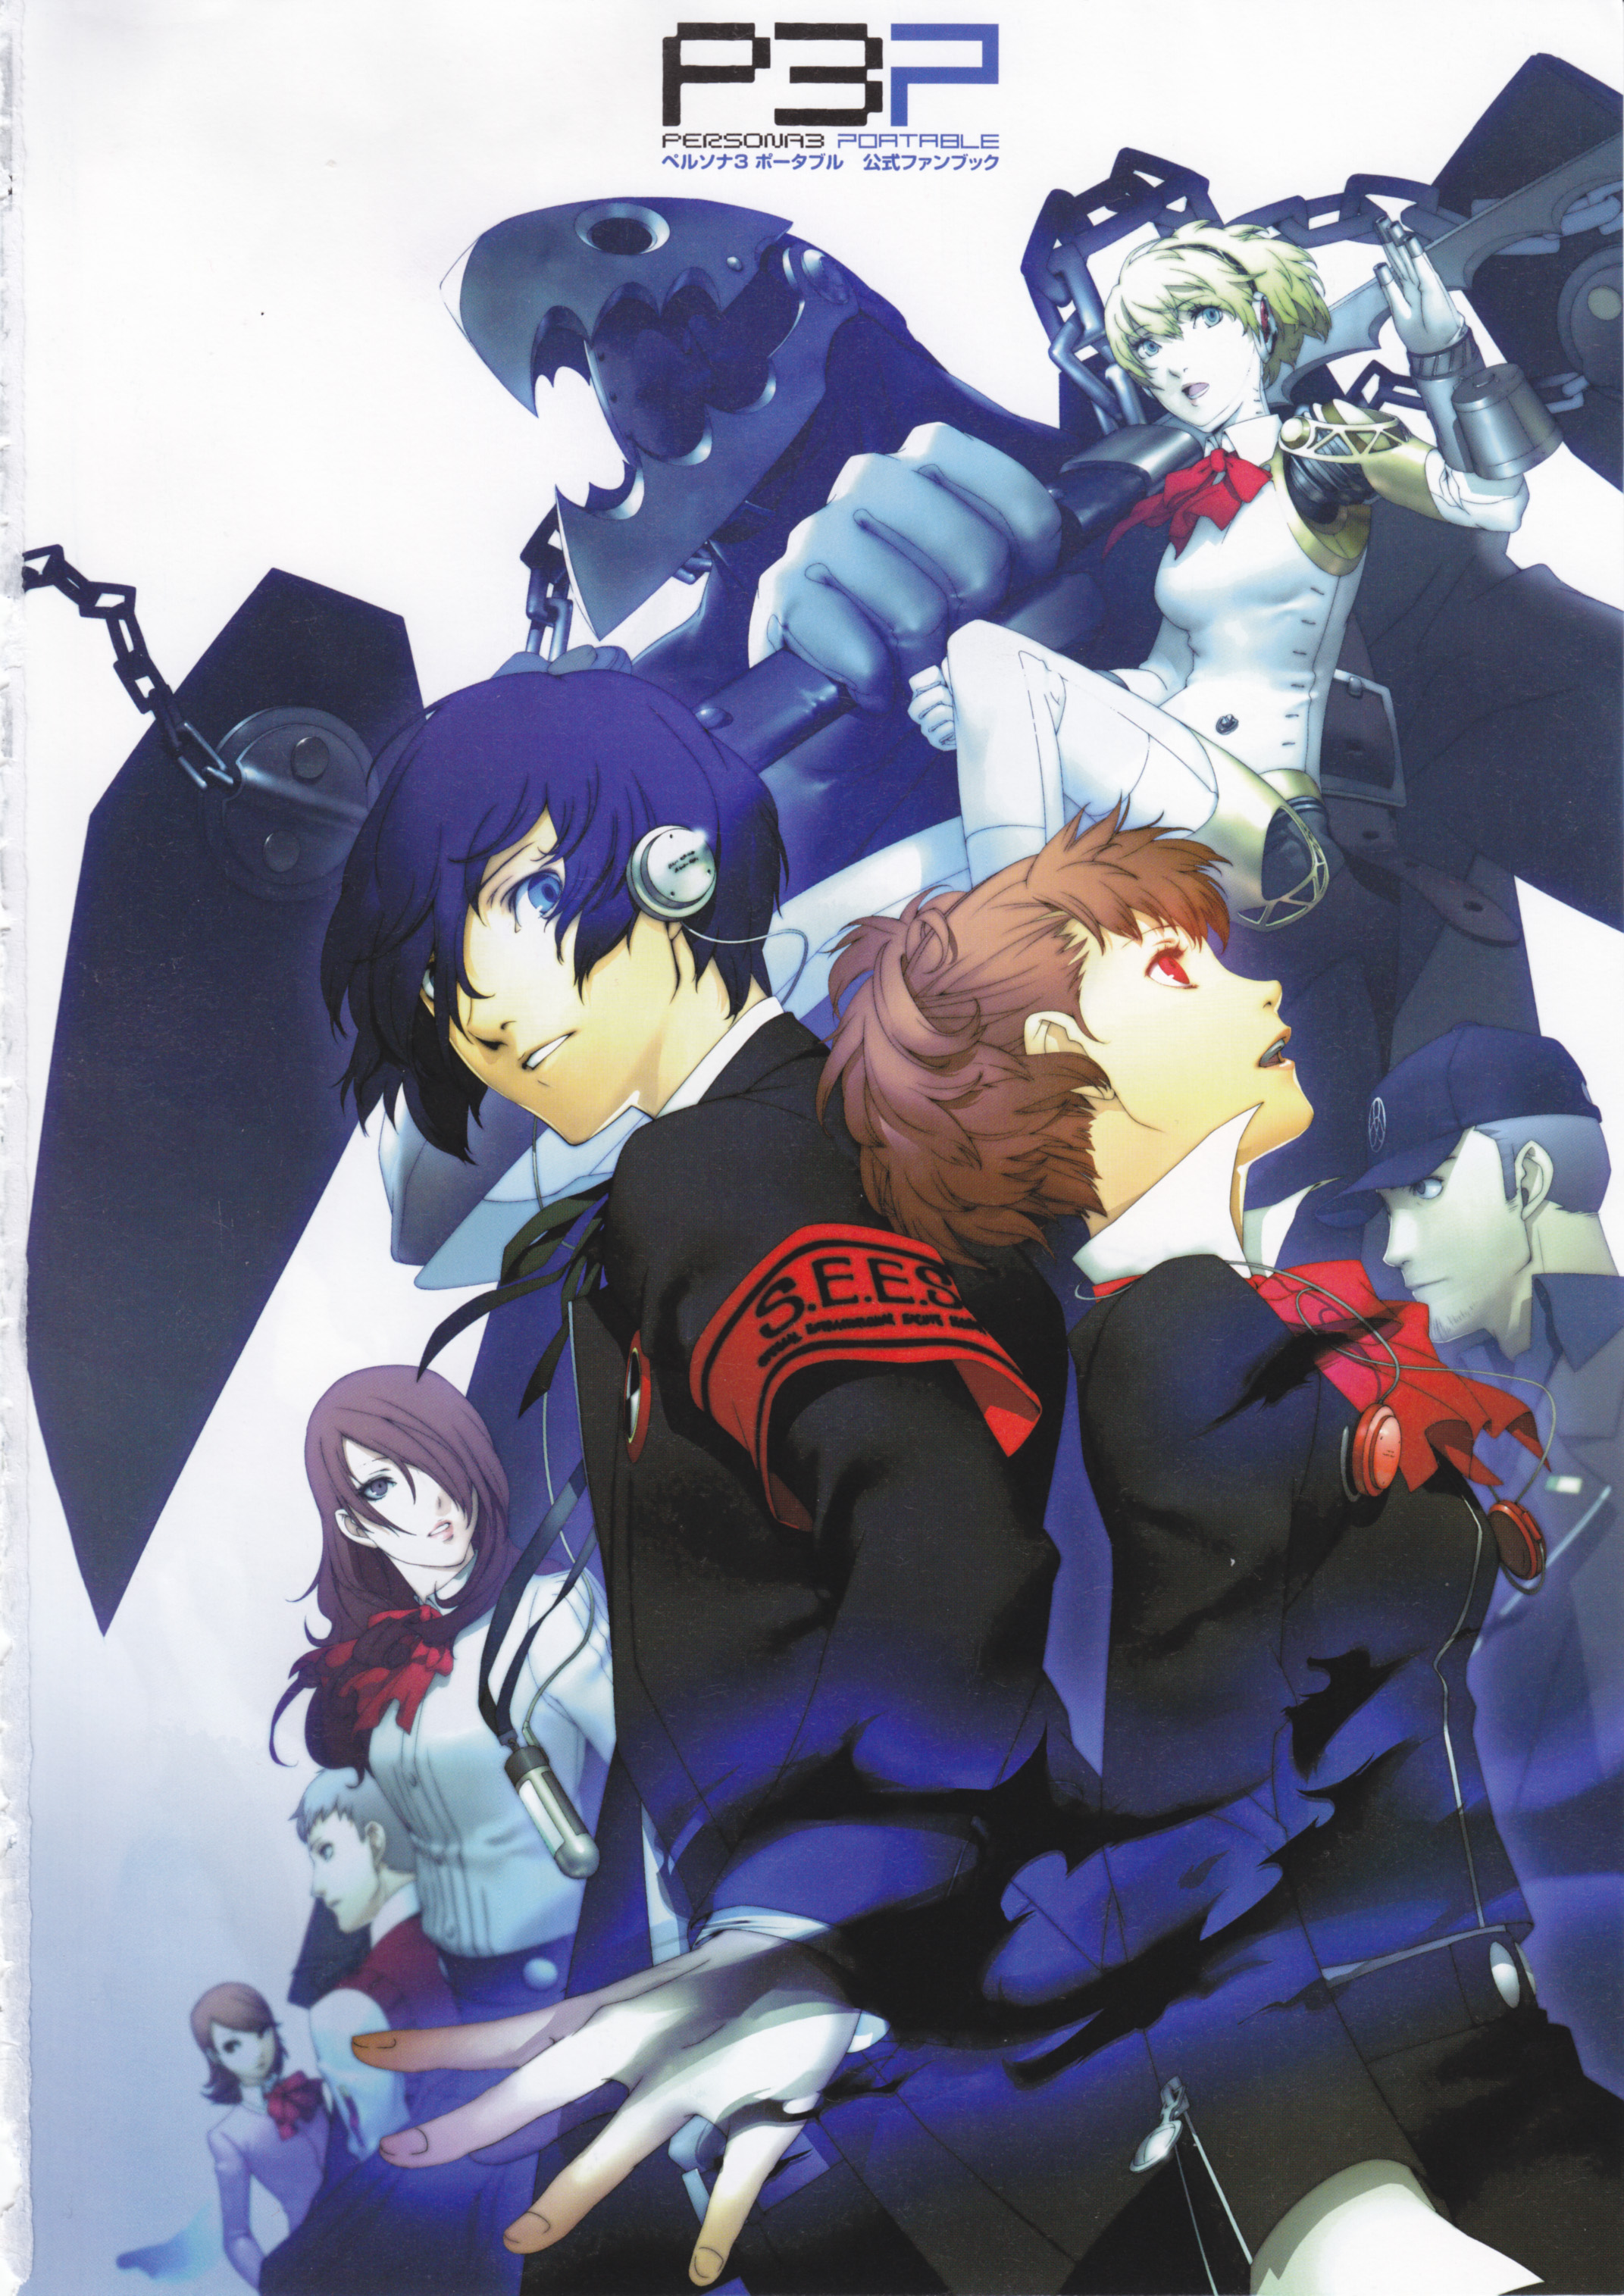 Persona 3 iphone 5 wallpaper - Persona 3 Iphone 5 Wallpaper 55